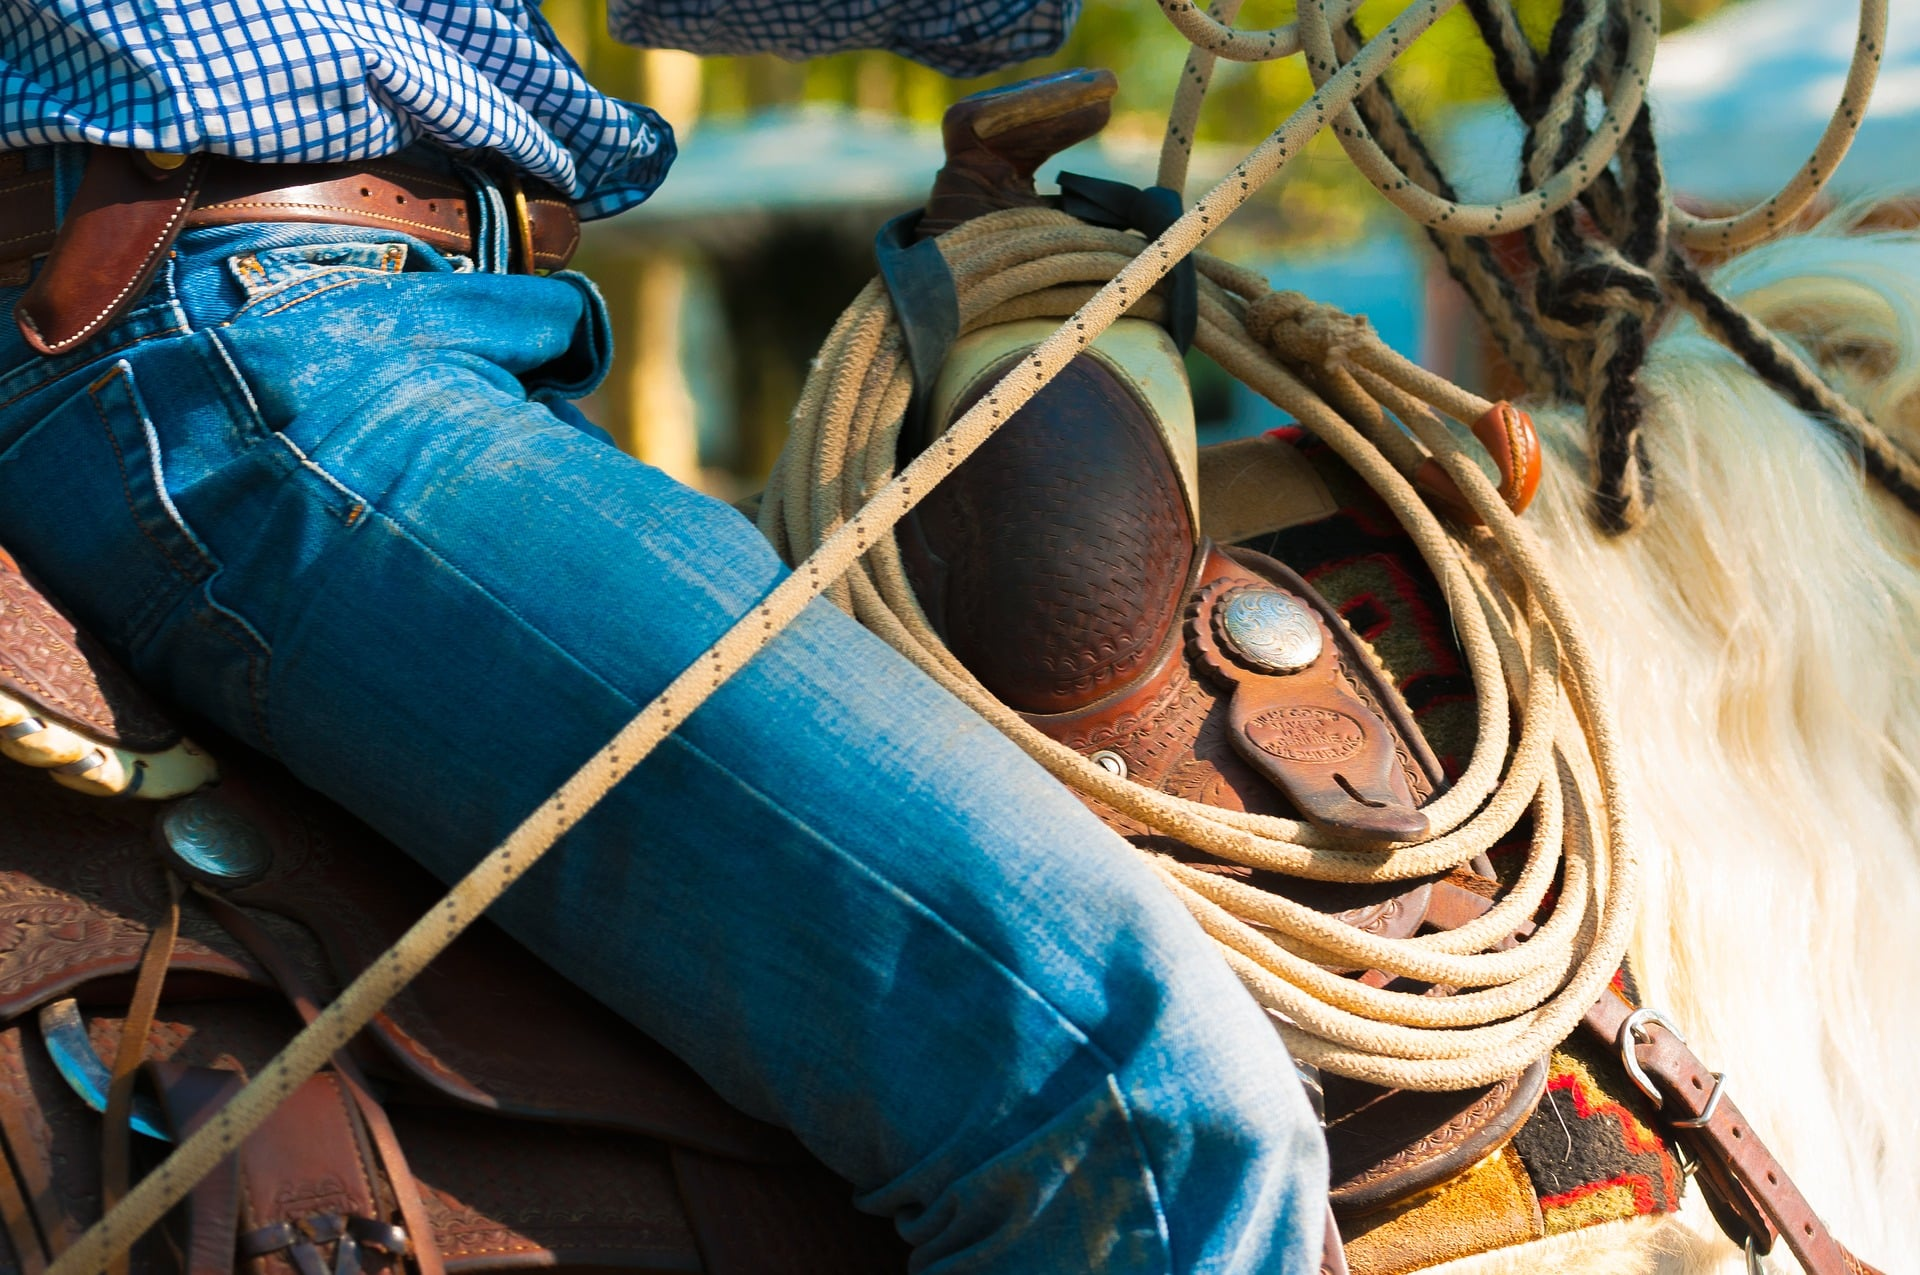 How To Buy Horse Tack For The First Time & What To Avoid 5